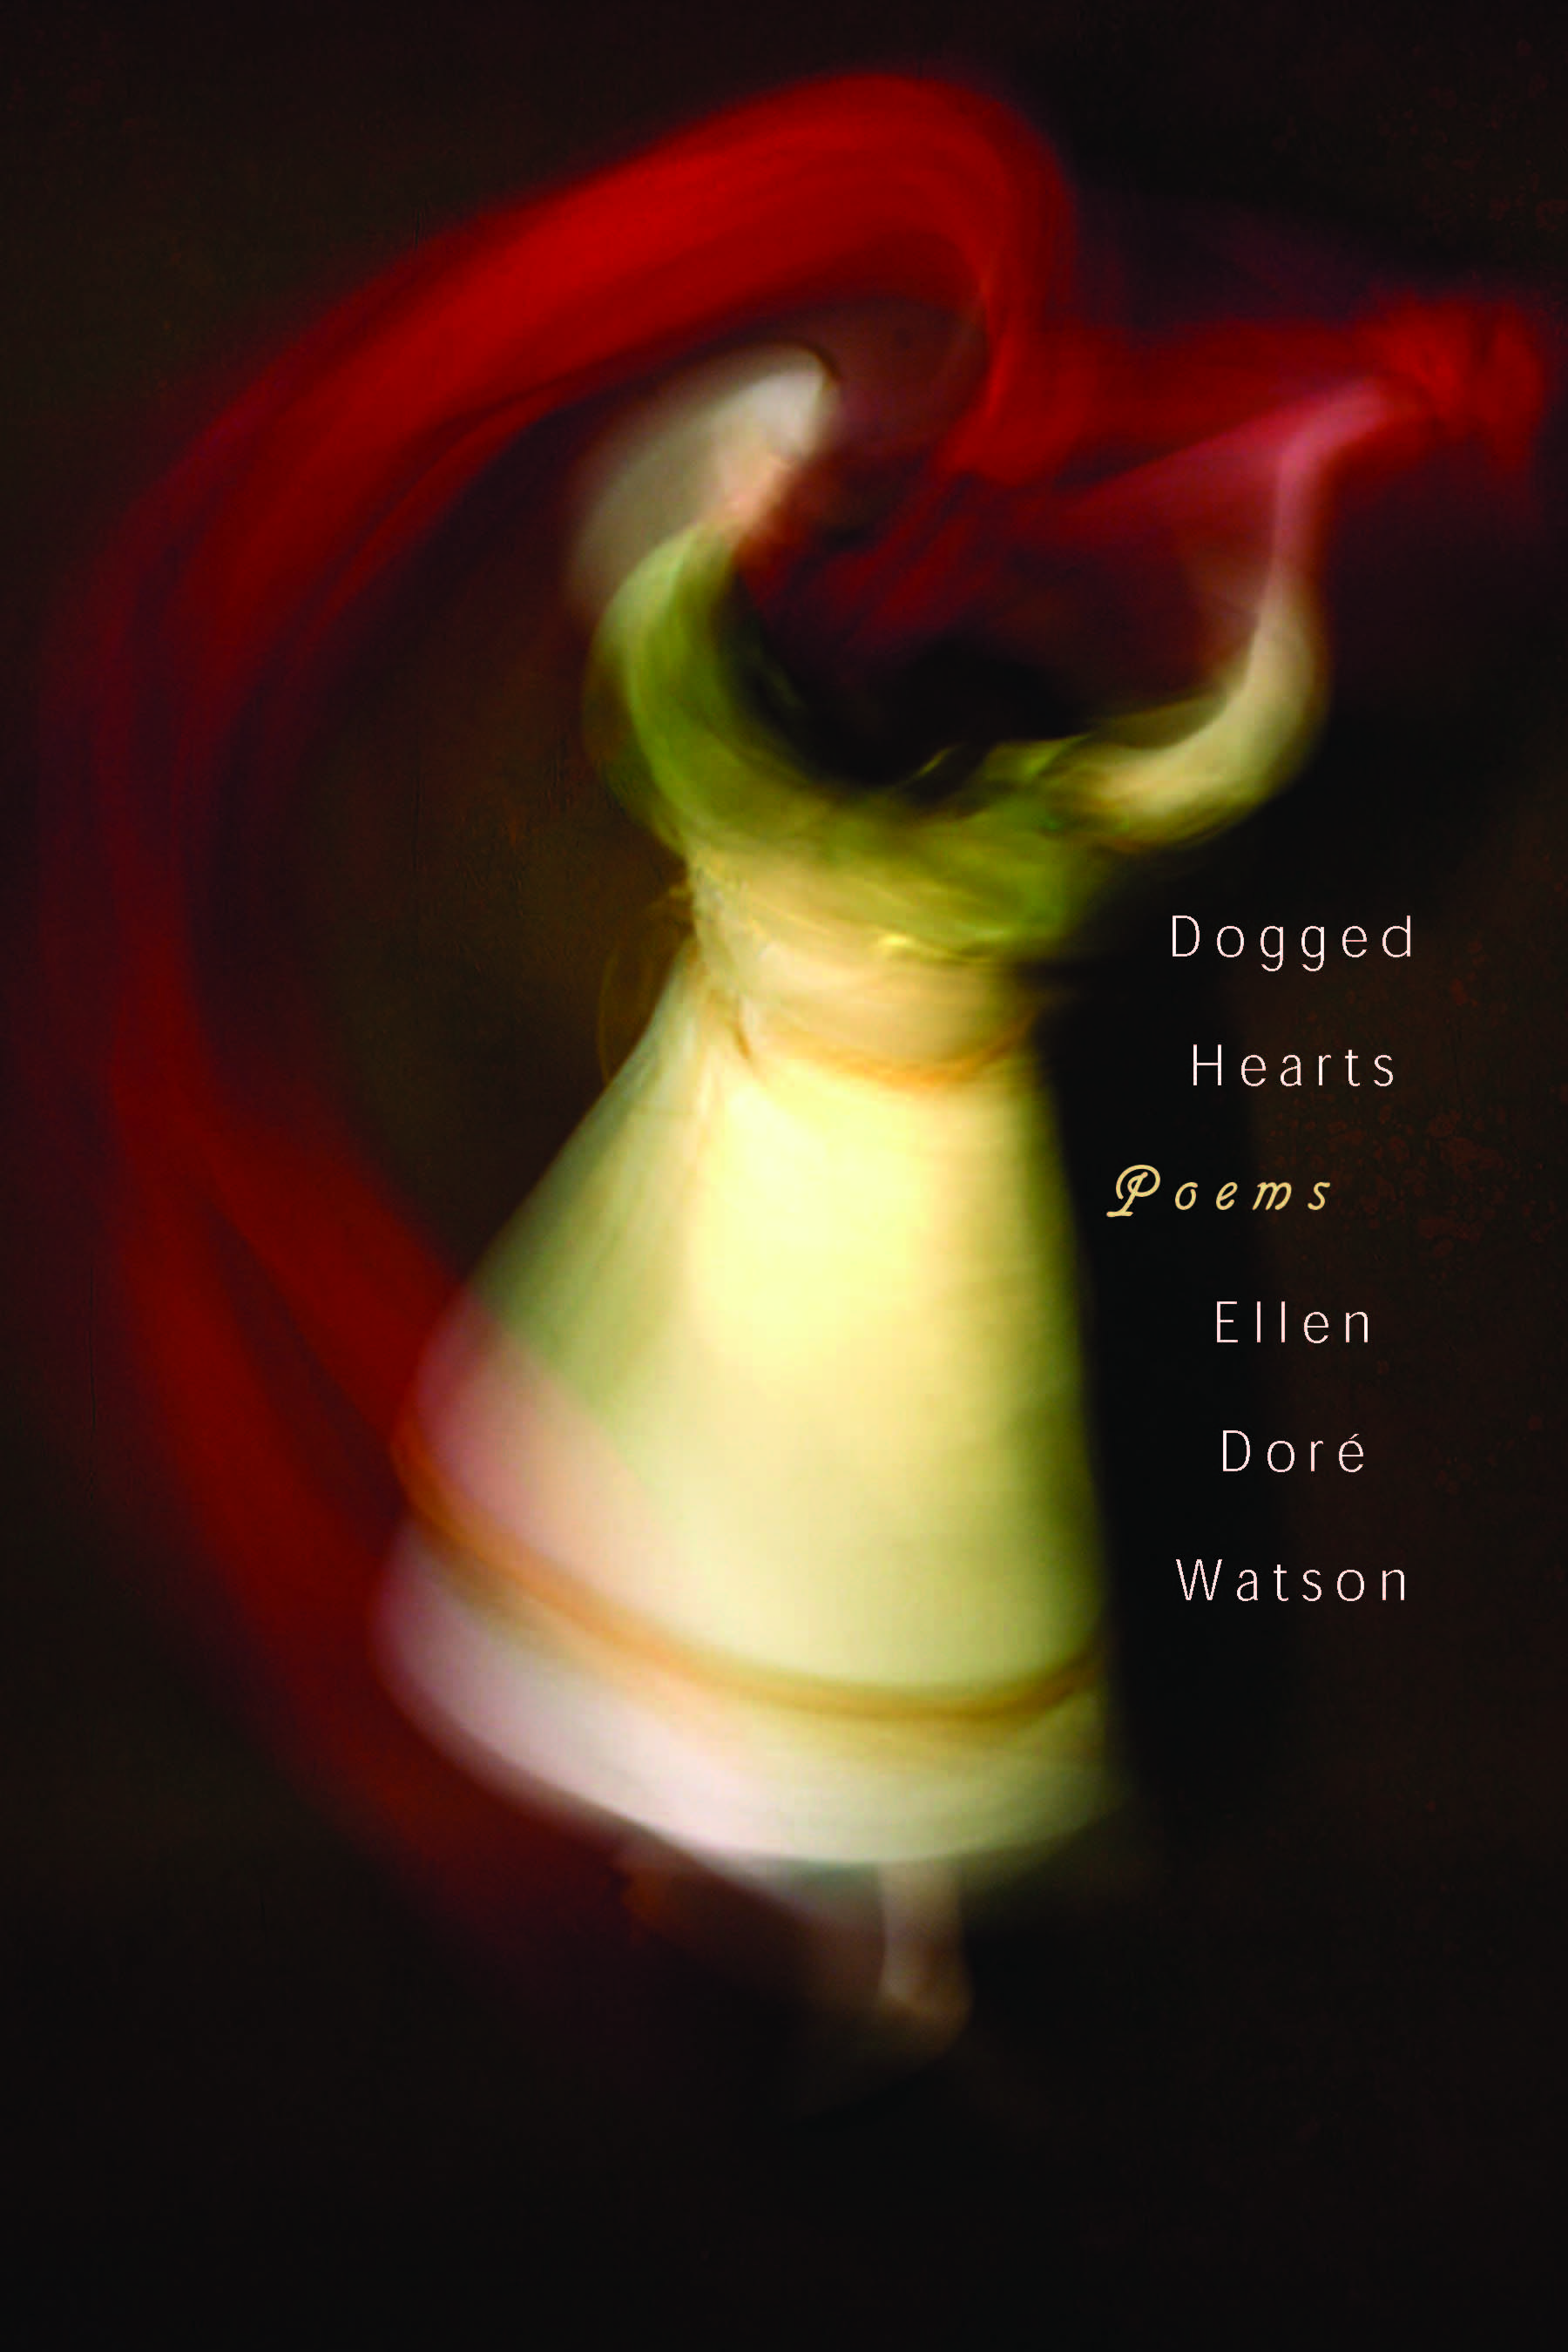 Ellen Dore Watson cover_Dogged Hearts_3-3-16